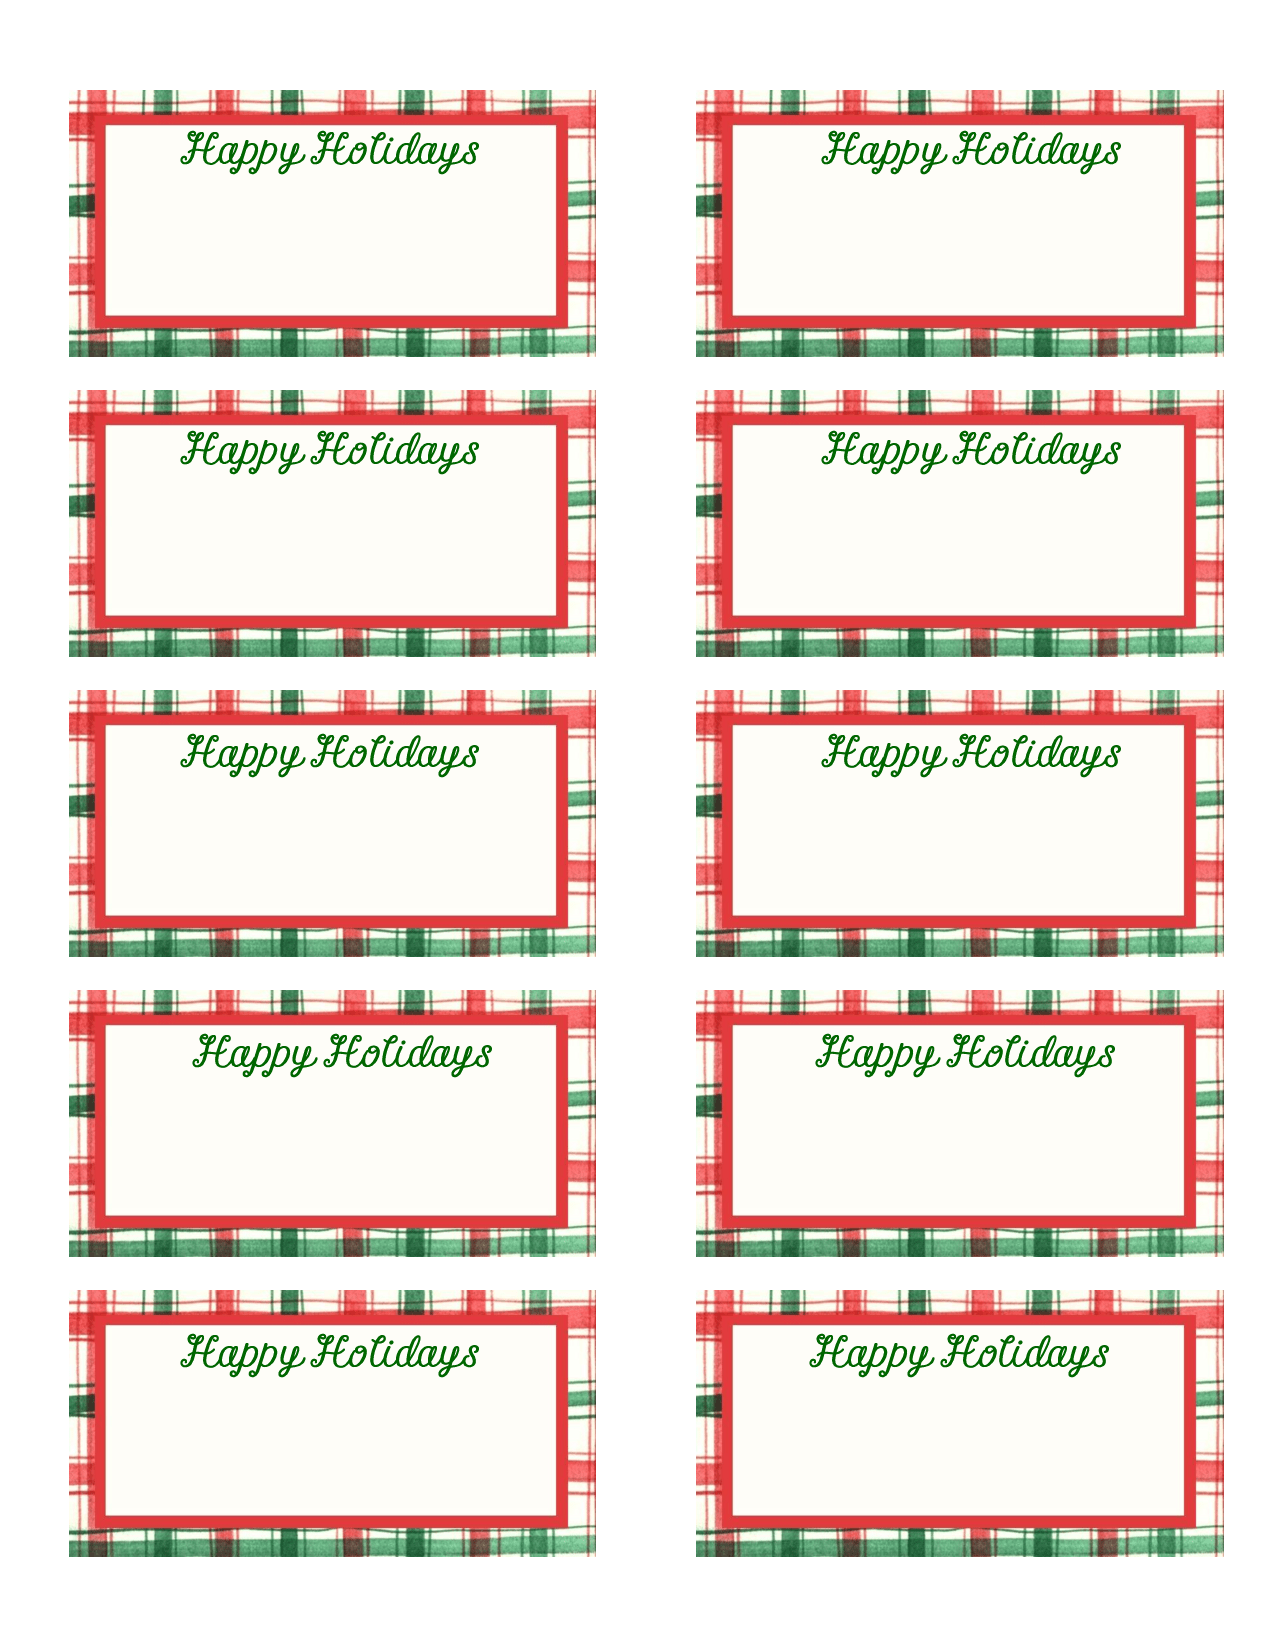 photograph about Free Printable Christmas Gift Tags Templates named Christmas Tag Template. christmas reward tag template fresh new calendar